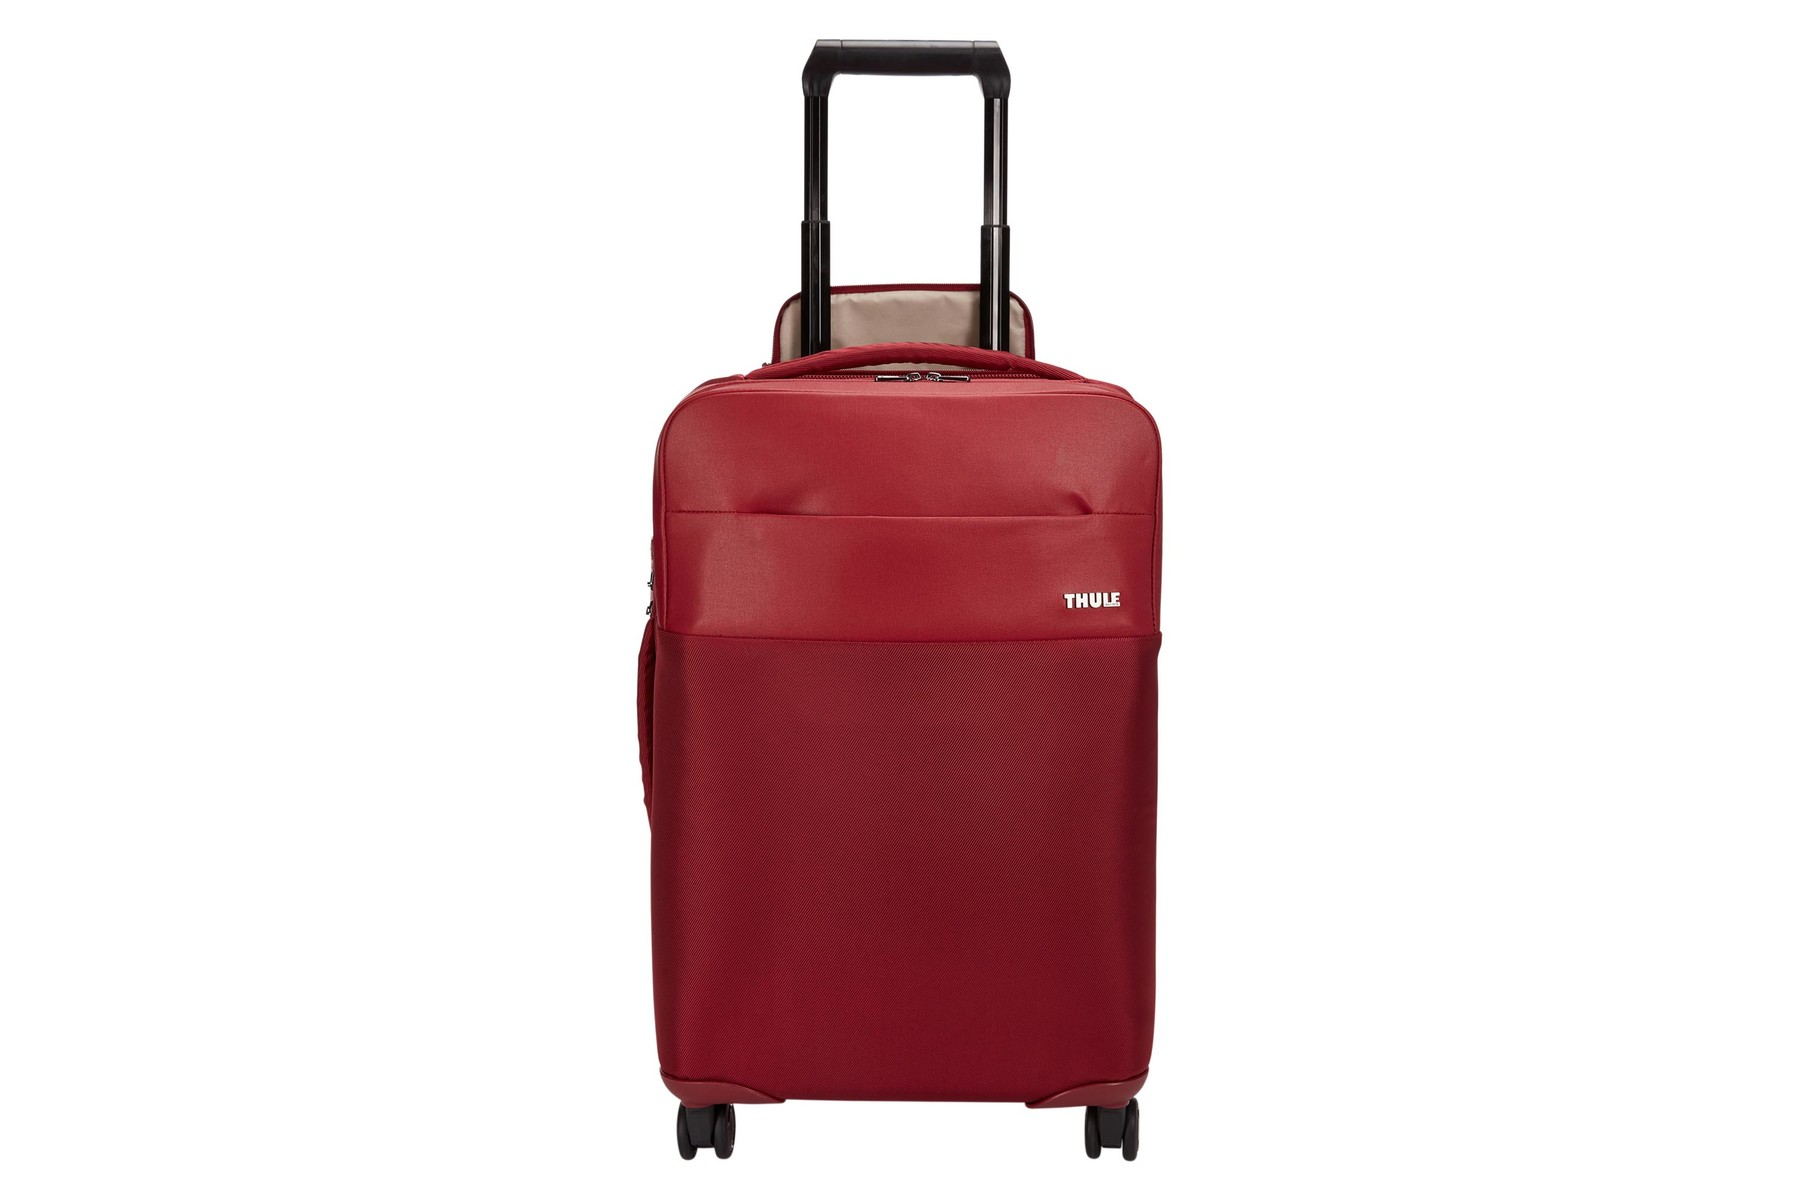 Thule Spira Carry On Spinner SPAC-122 Rio (320414..